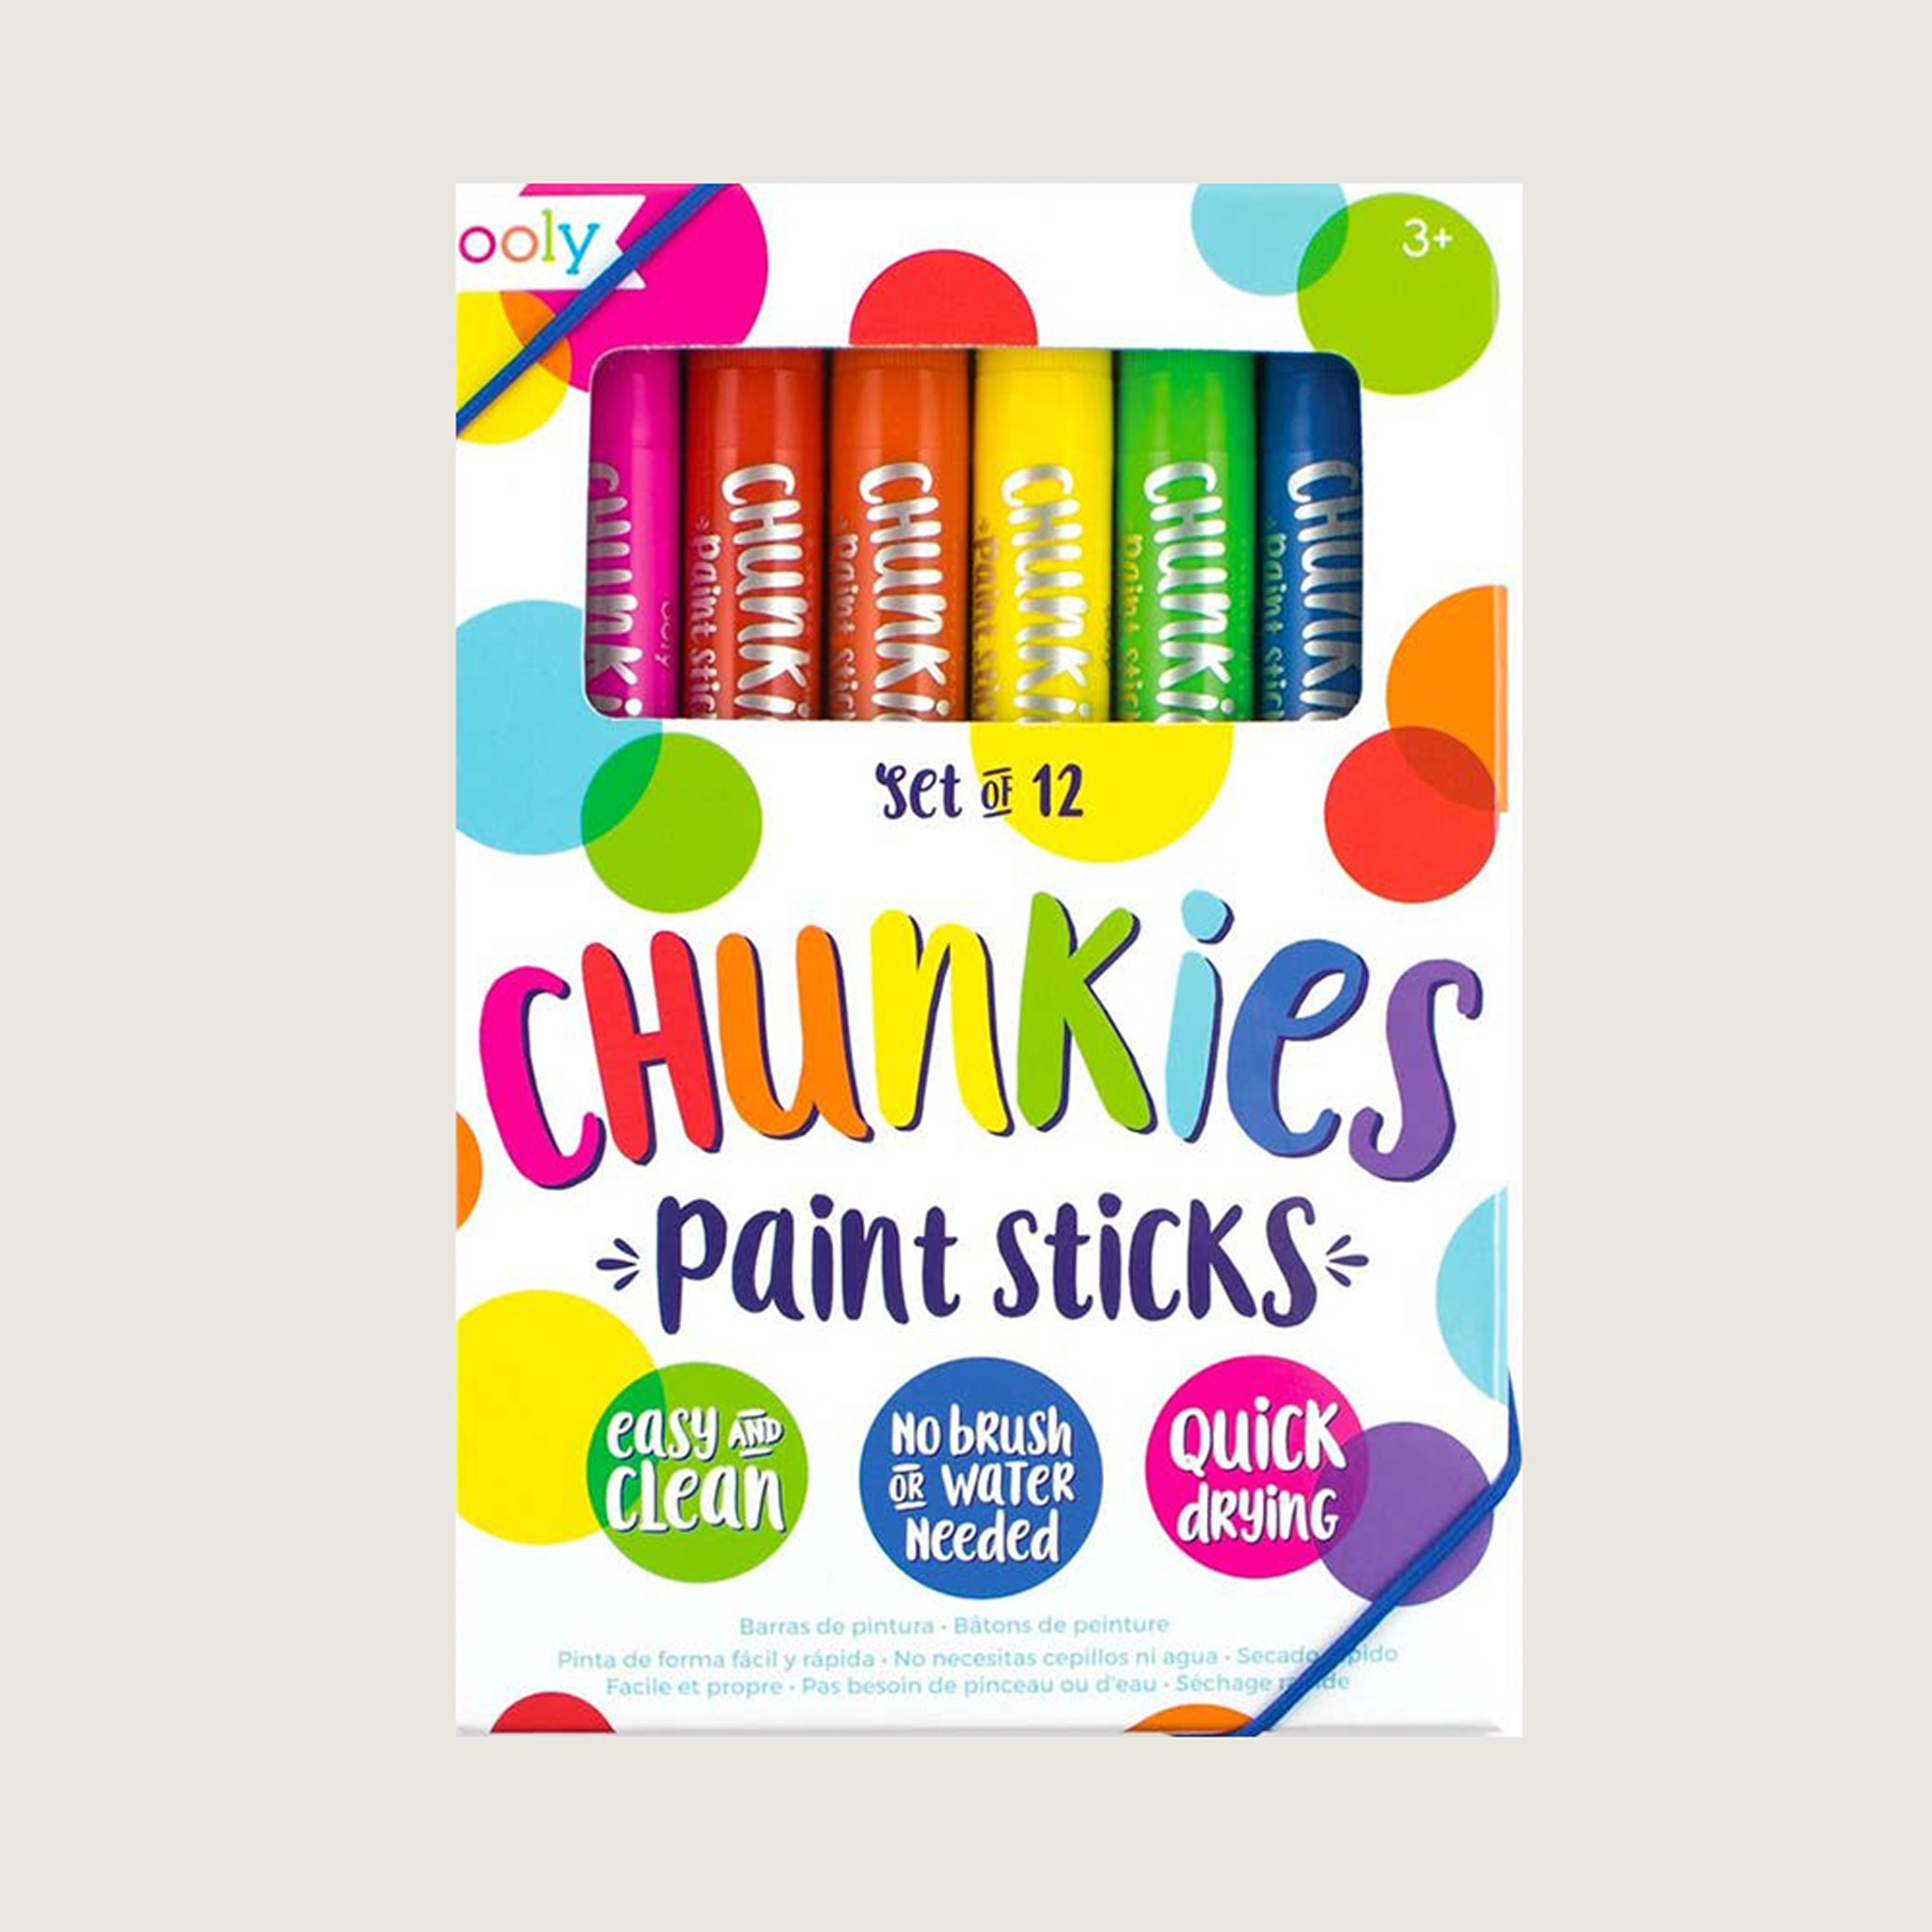 Chunkies Paint Sticks - Blackbird General Store